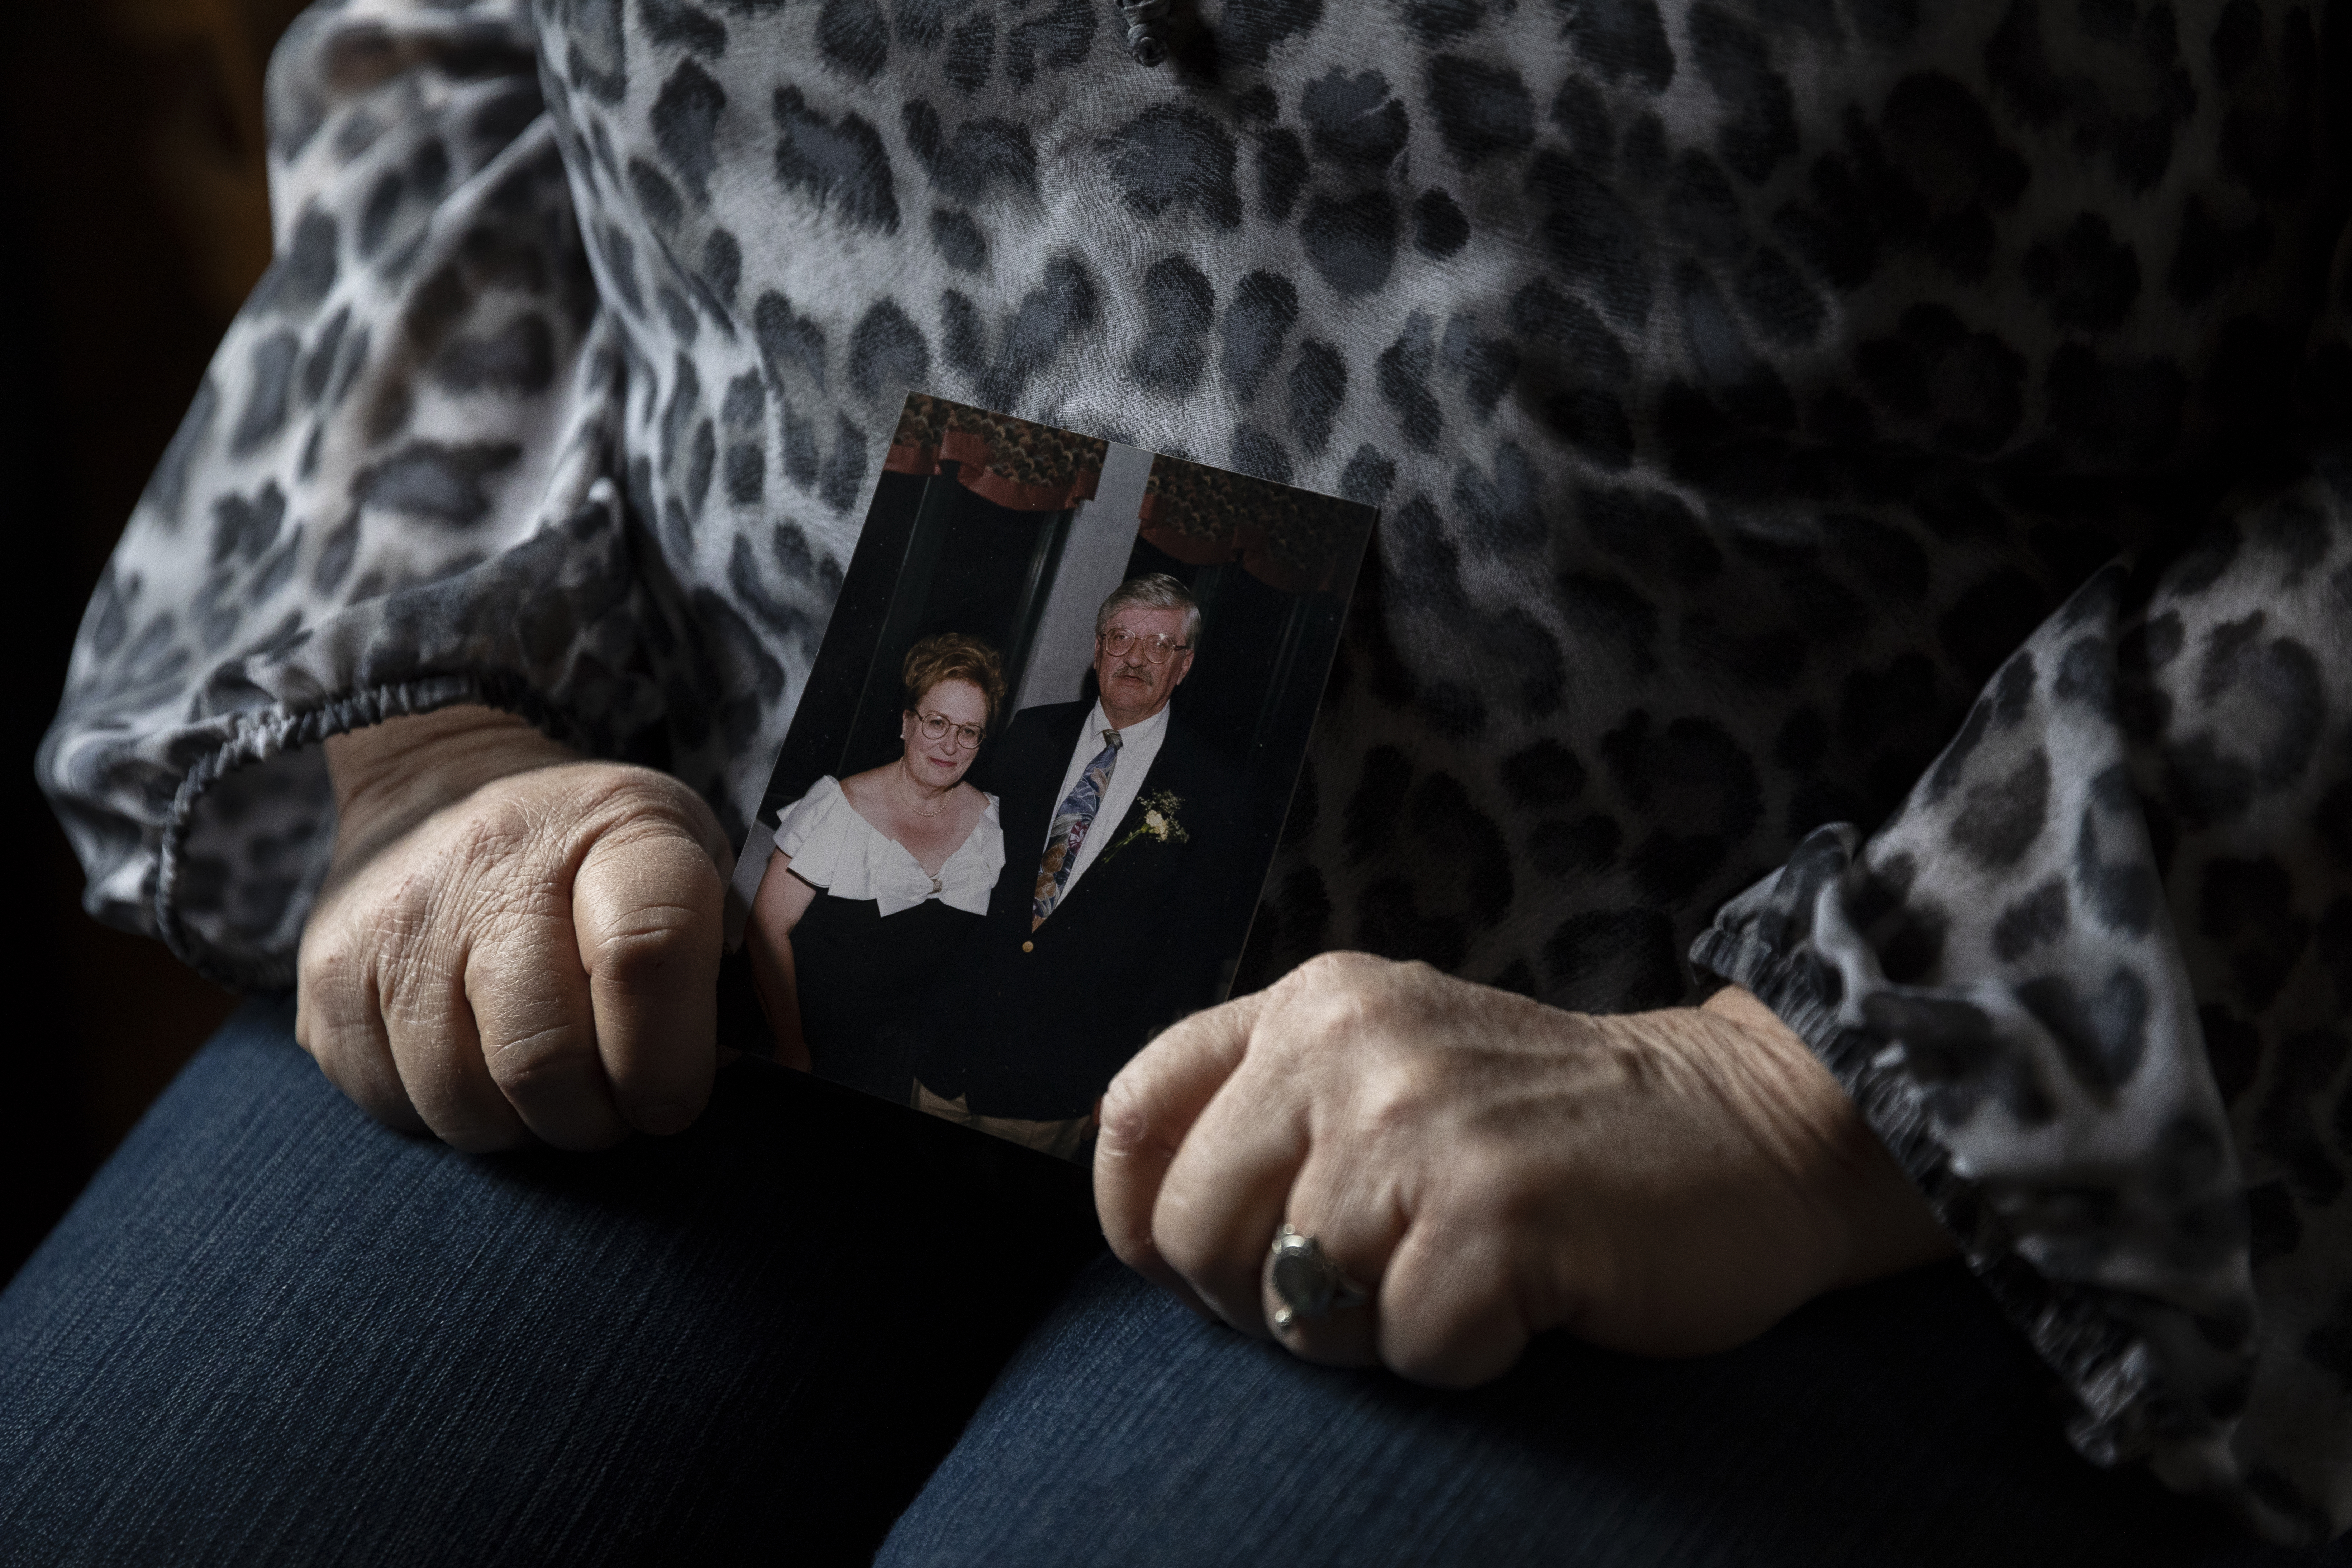 Janine Cooke, 53, holds a photo of her mother, Mary Catlin, and a friend at her home in Brighton, Mich. MUST CREDIT: Photo for The Washington Post by Elaine Cromie